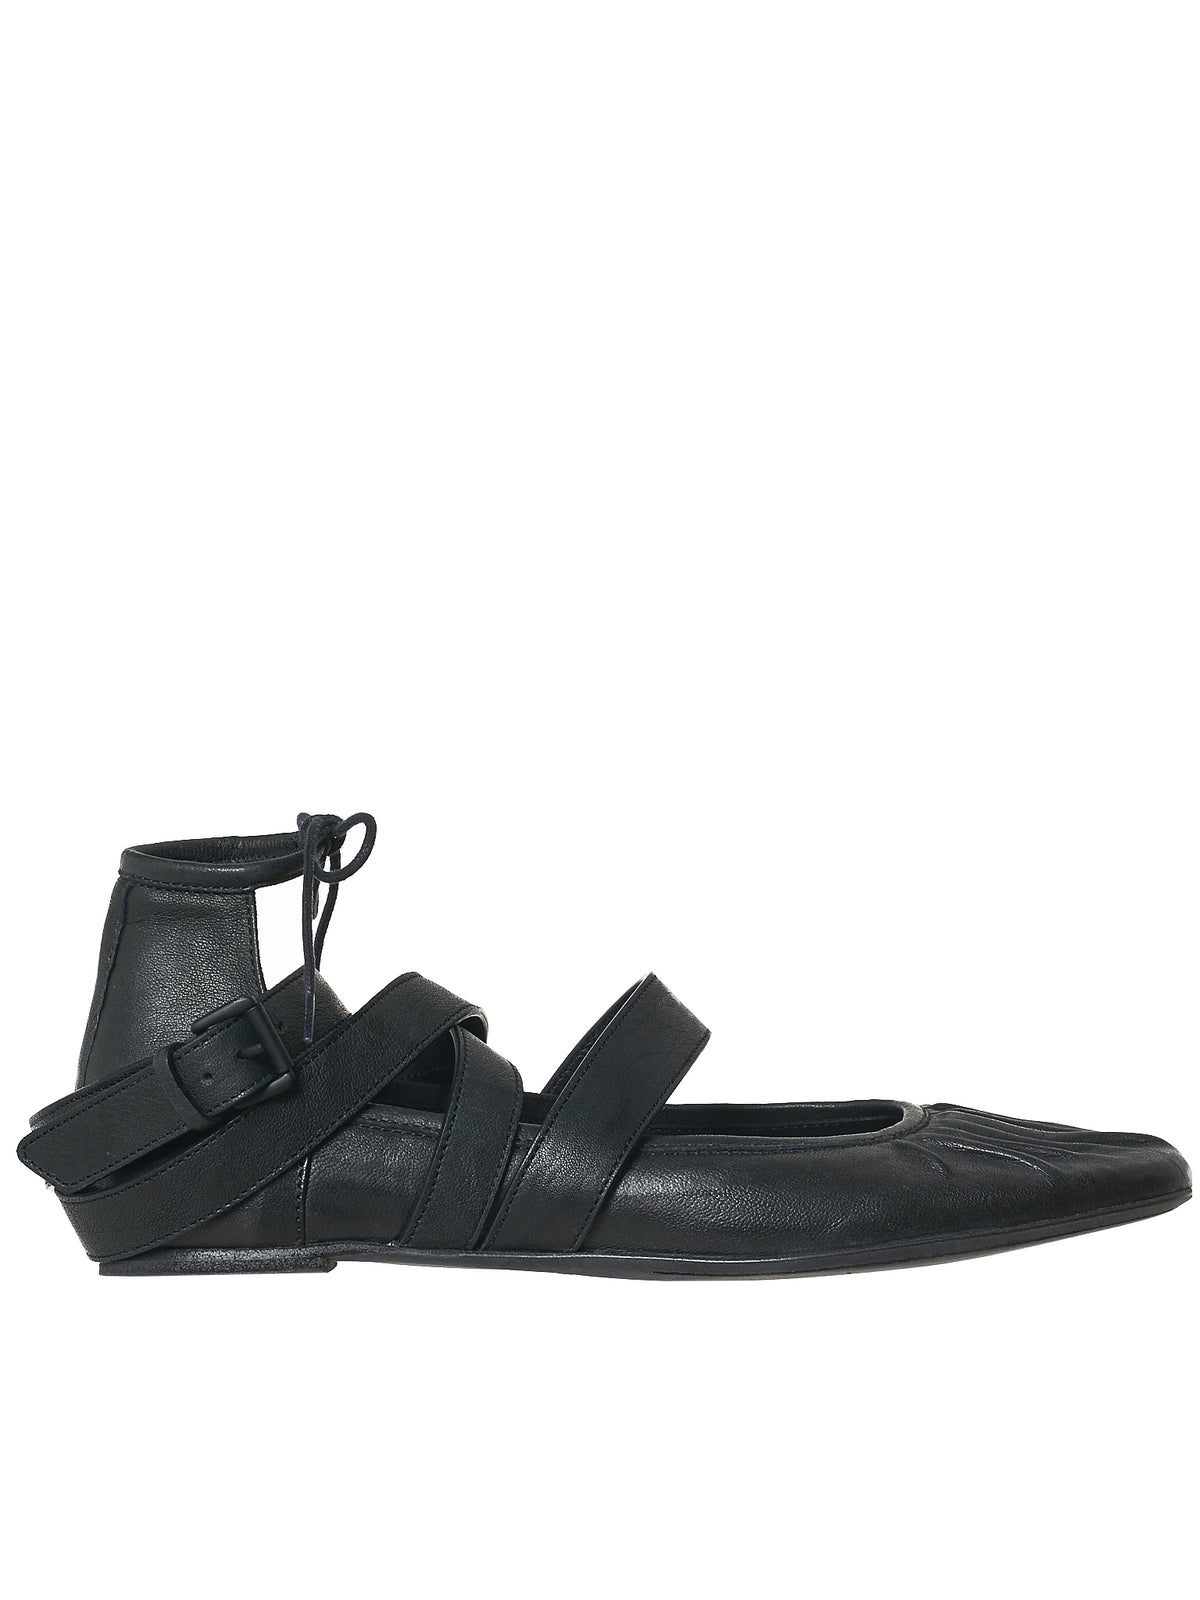 Ann Demeulemeester Leather Flats - Hlorenzo Front